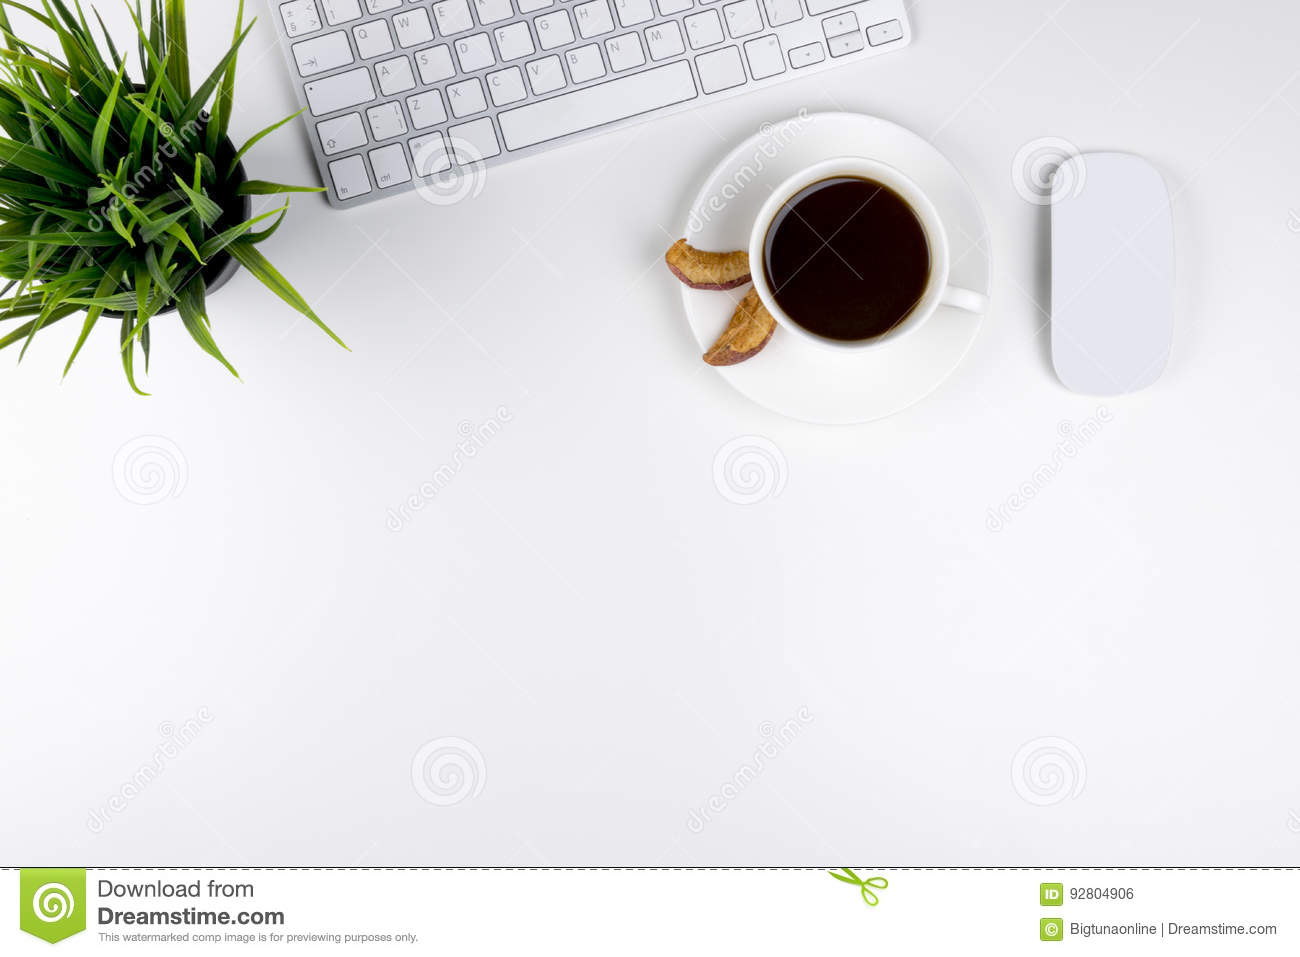 Office desk with copy space. Digital devices wireless keyboard and mouse on office table with cup of coffee, top view